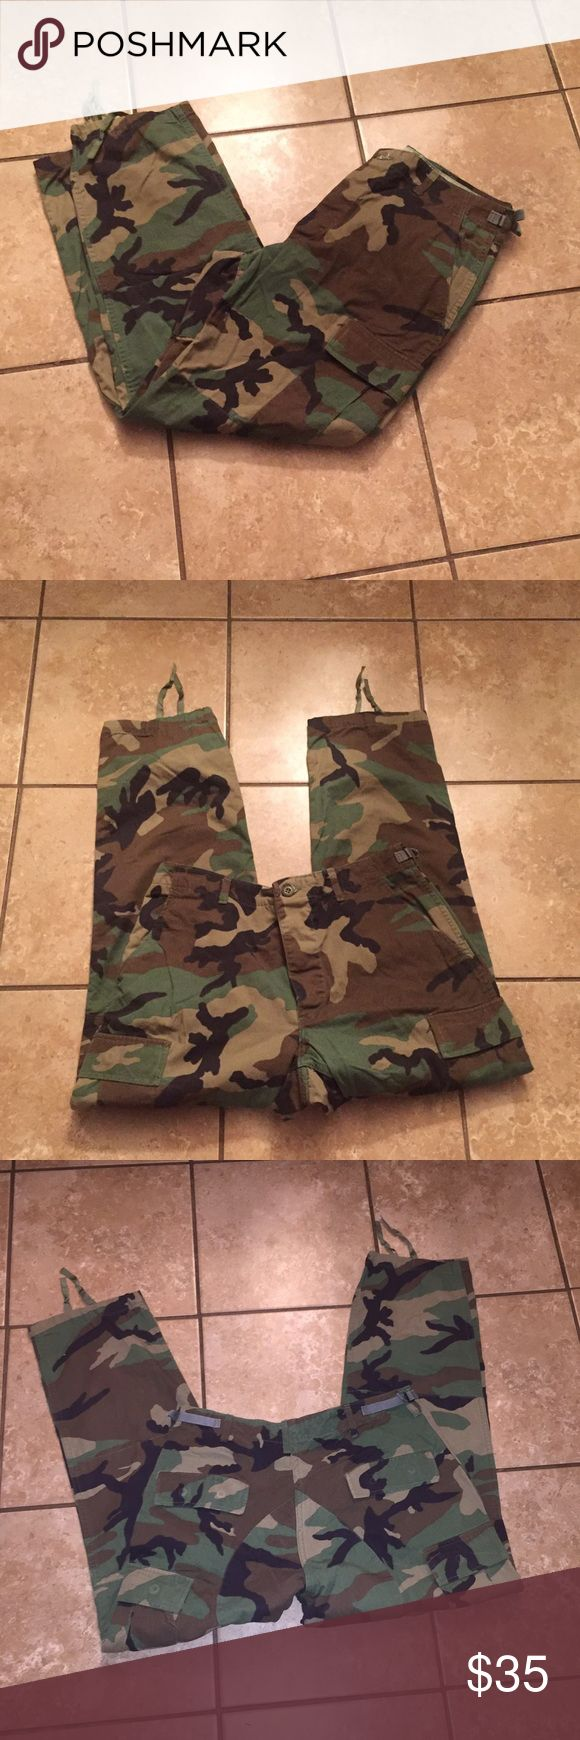 Men's Camo pants. Camouflage Army pants An excellent pair of men's Army Camo pants! *see exact size in last photo. Like new. Great condition. Adjustable waist Camo Pants Cargo